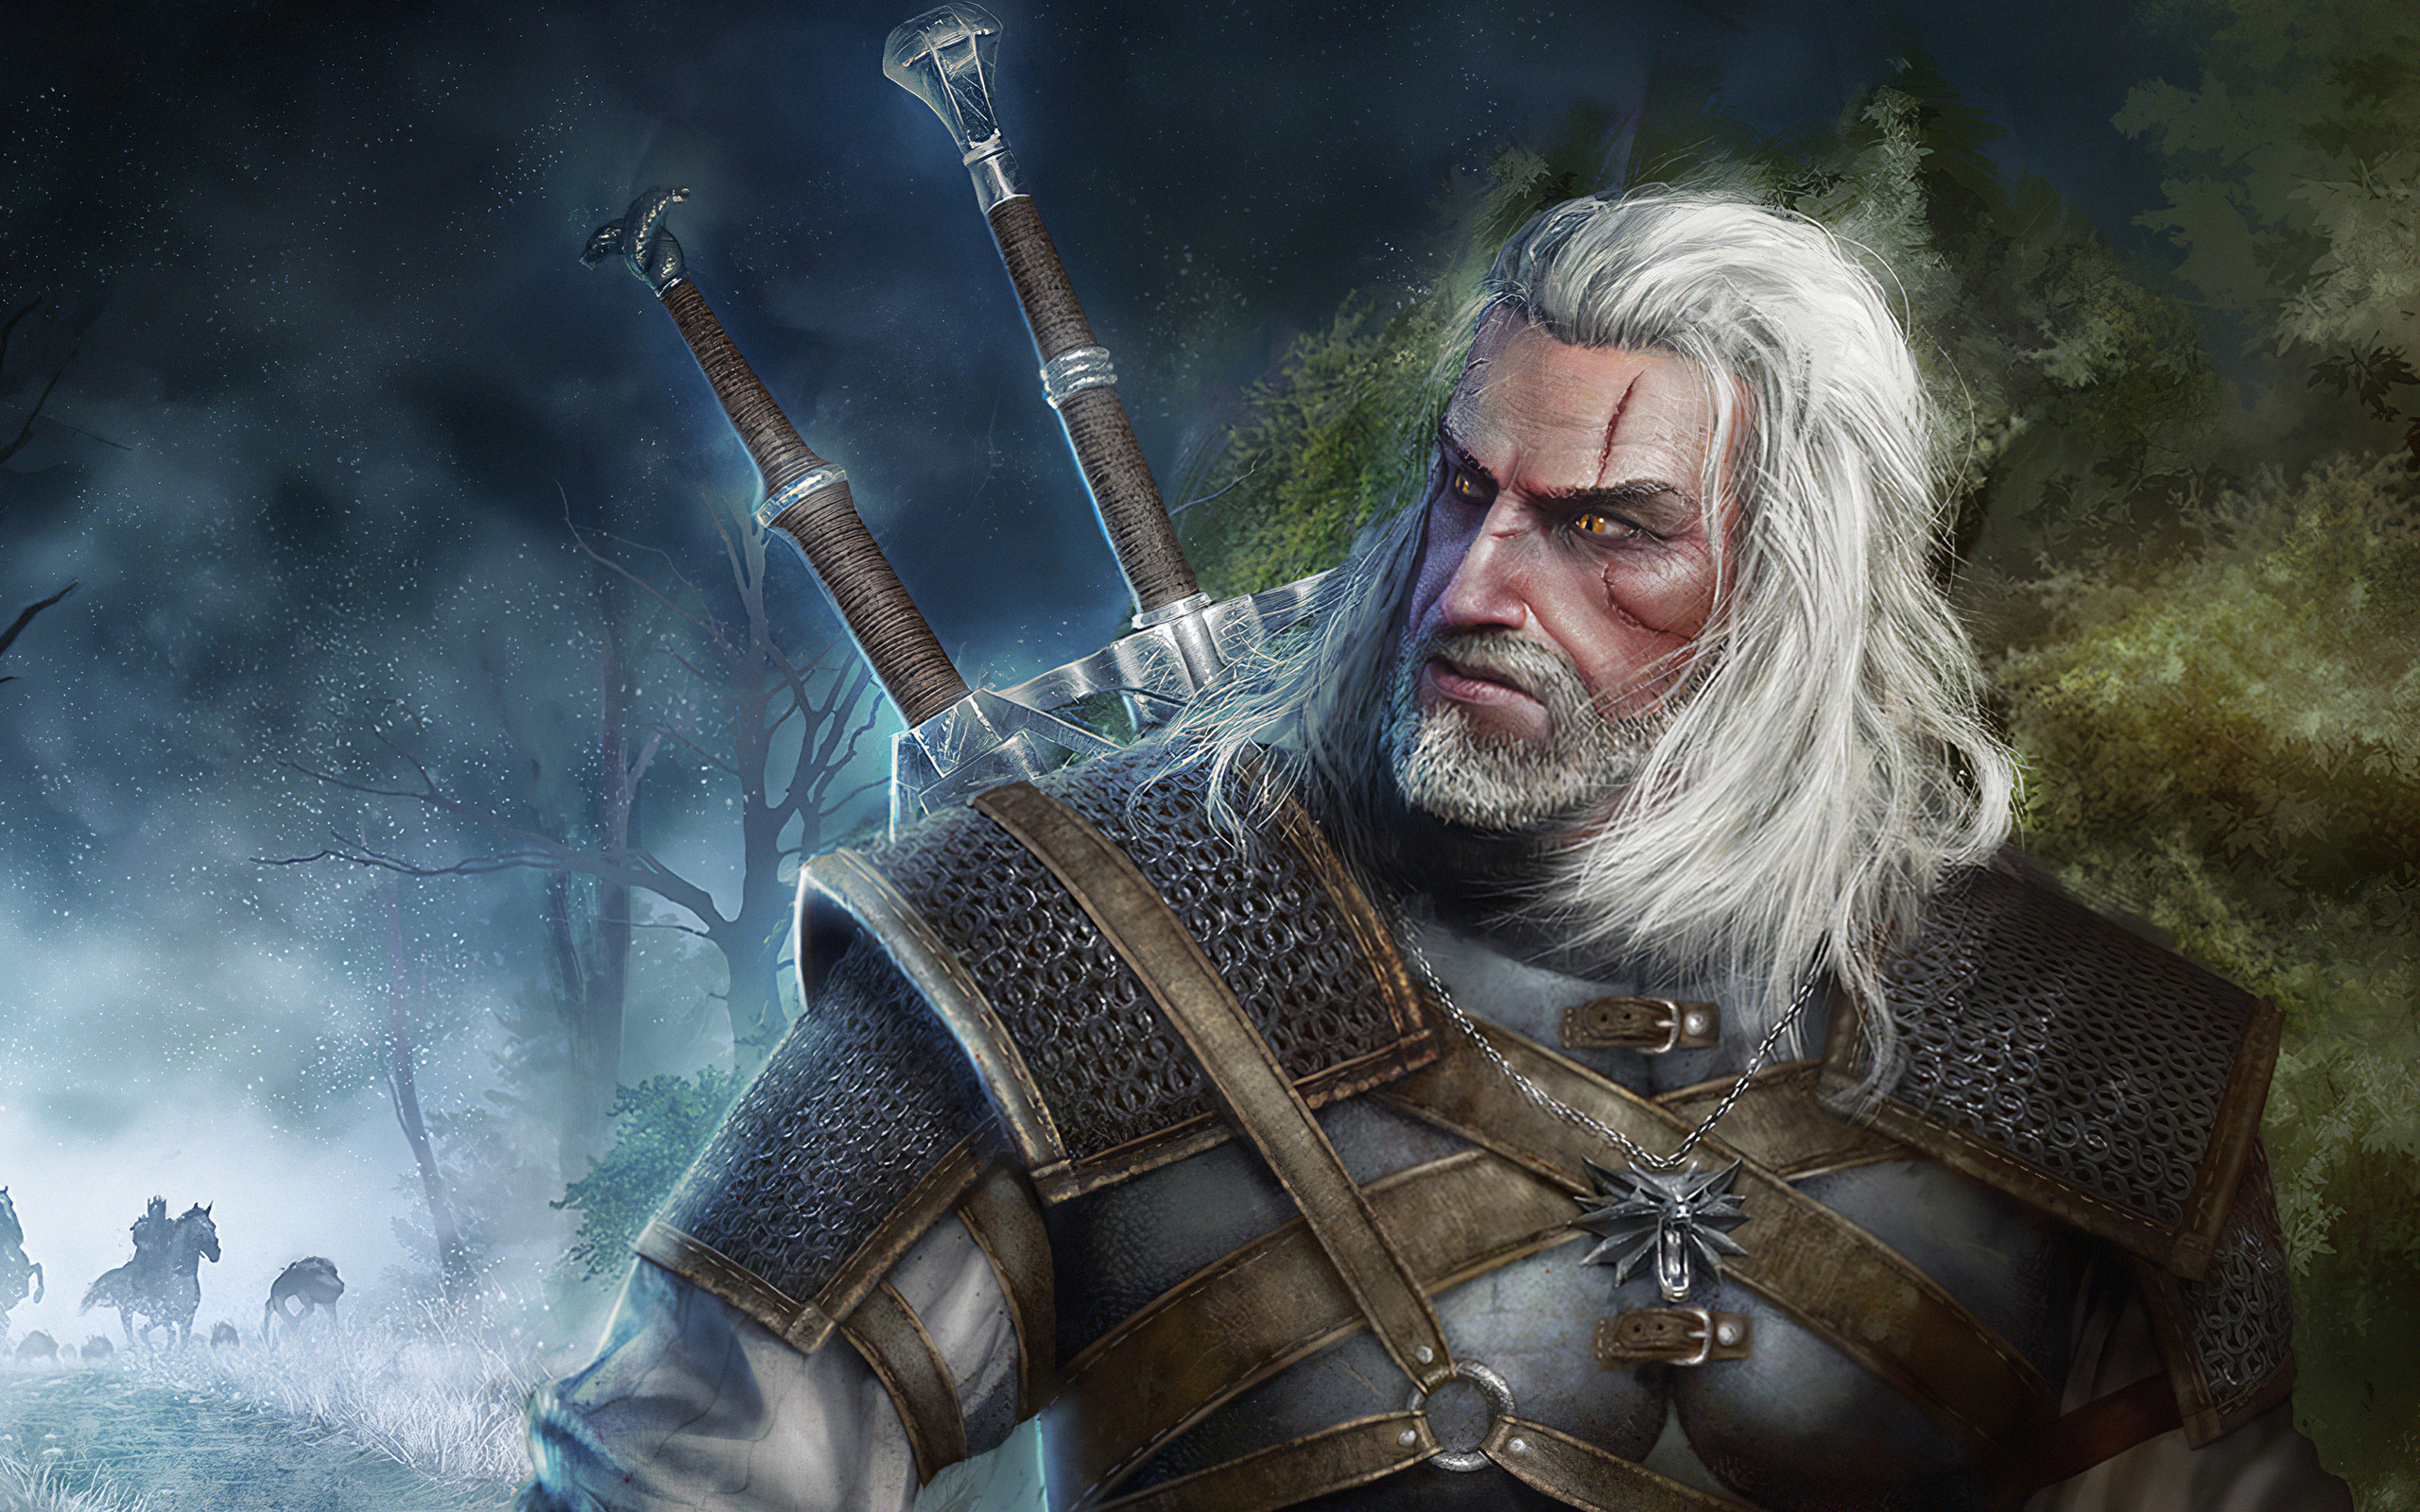 geralt-of-rivia-the-witcher-3-cj.jpg